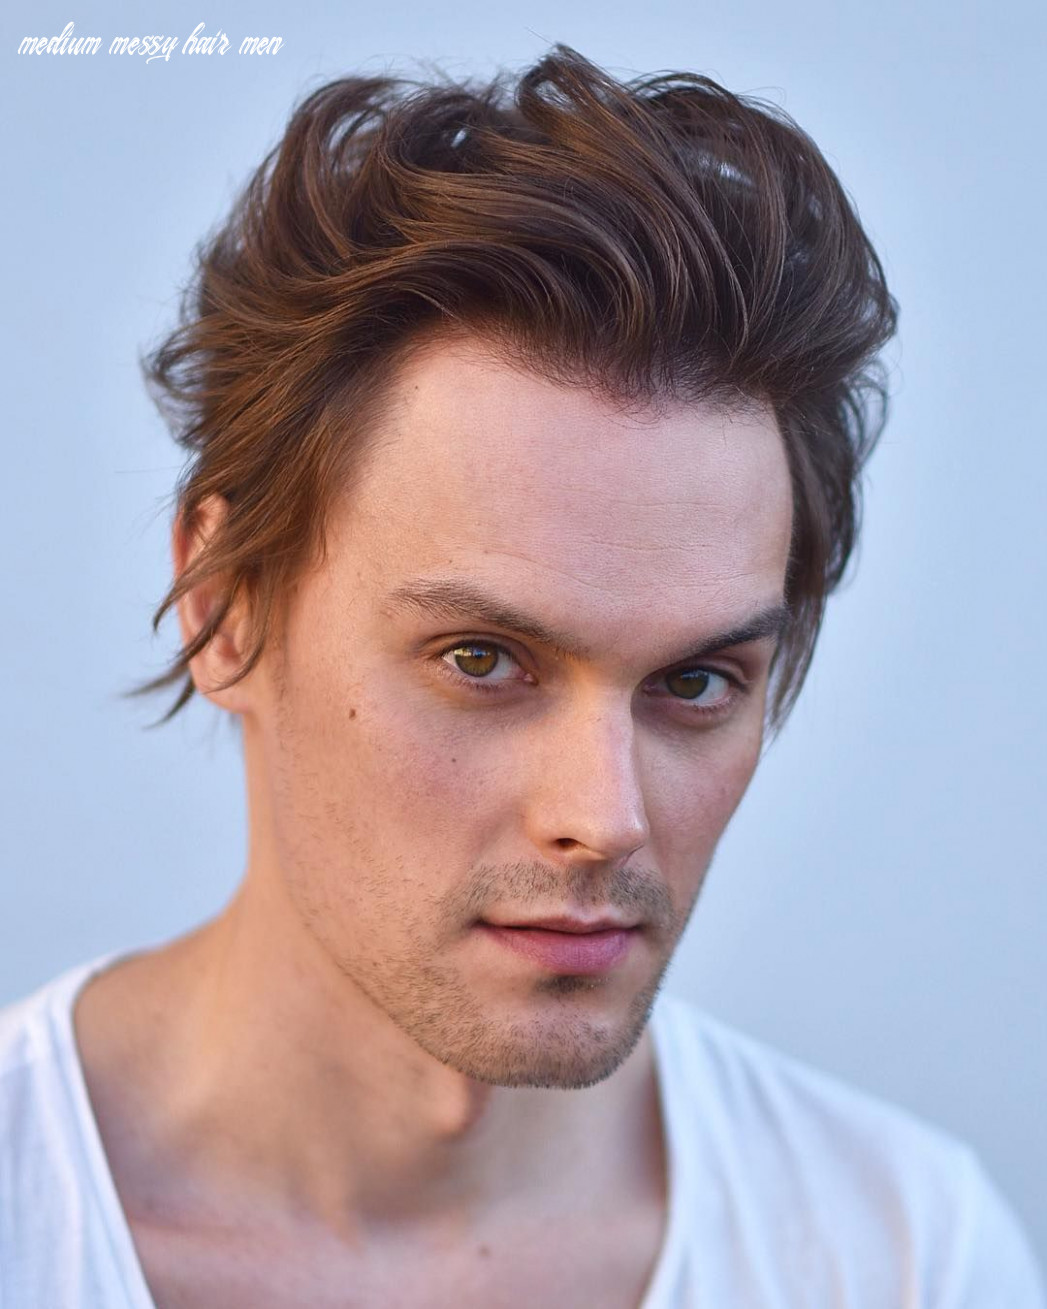 9 mess hairstyles for men that are super cool   mens hairstyles